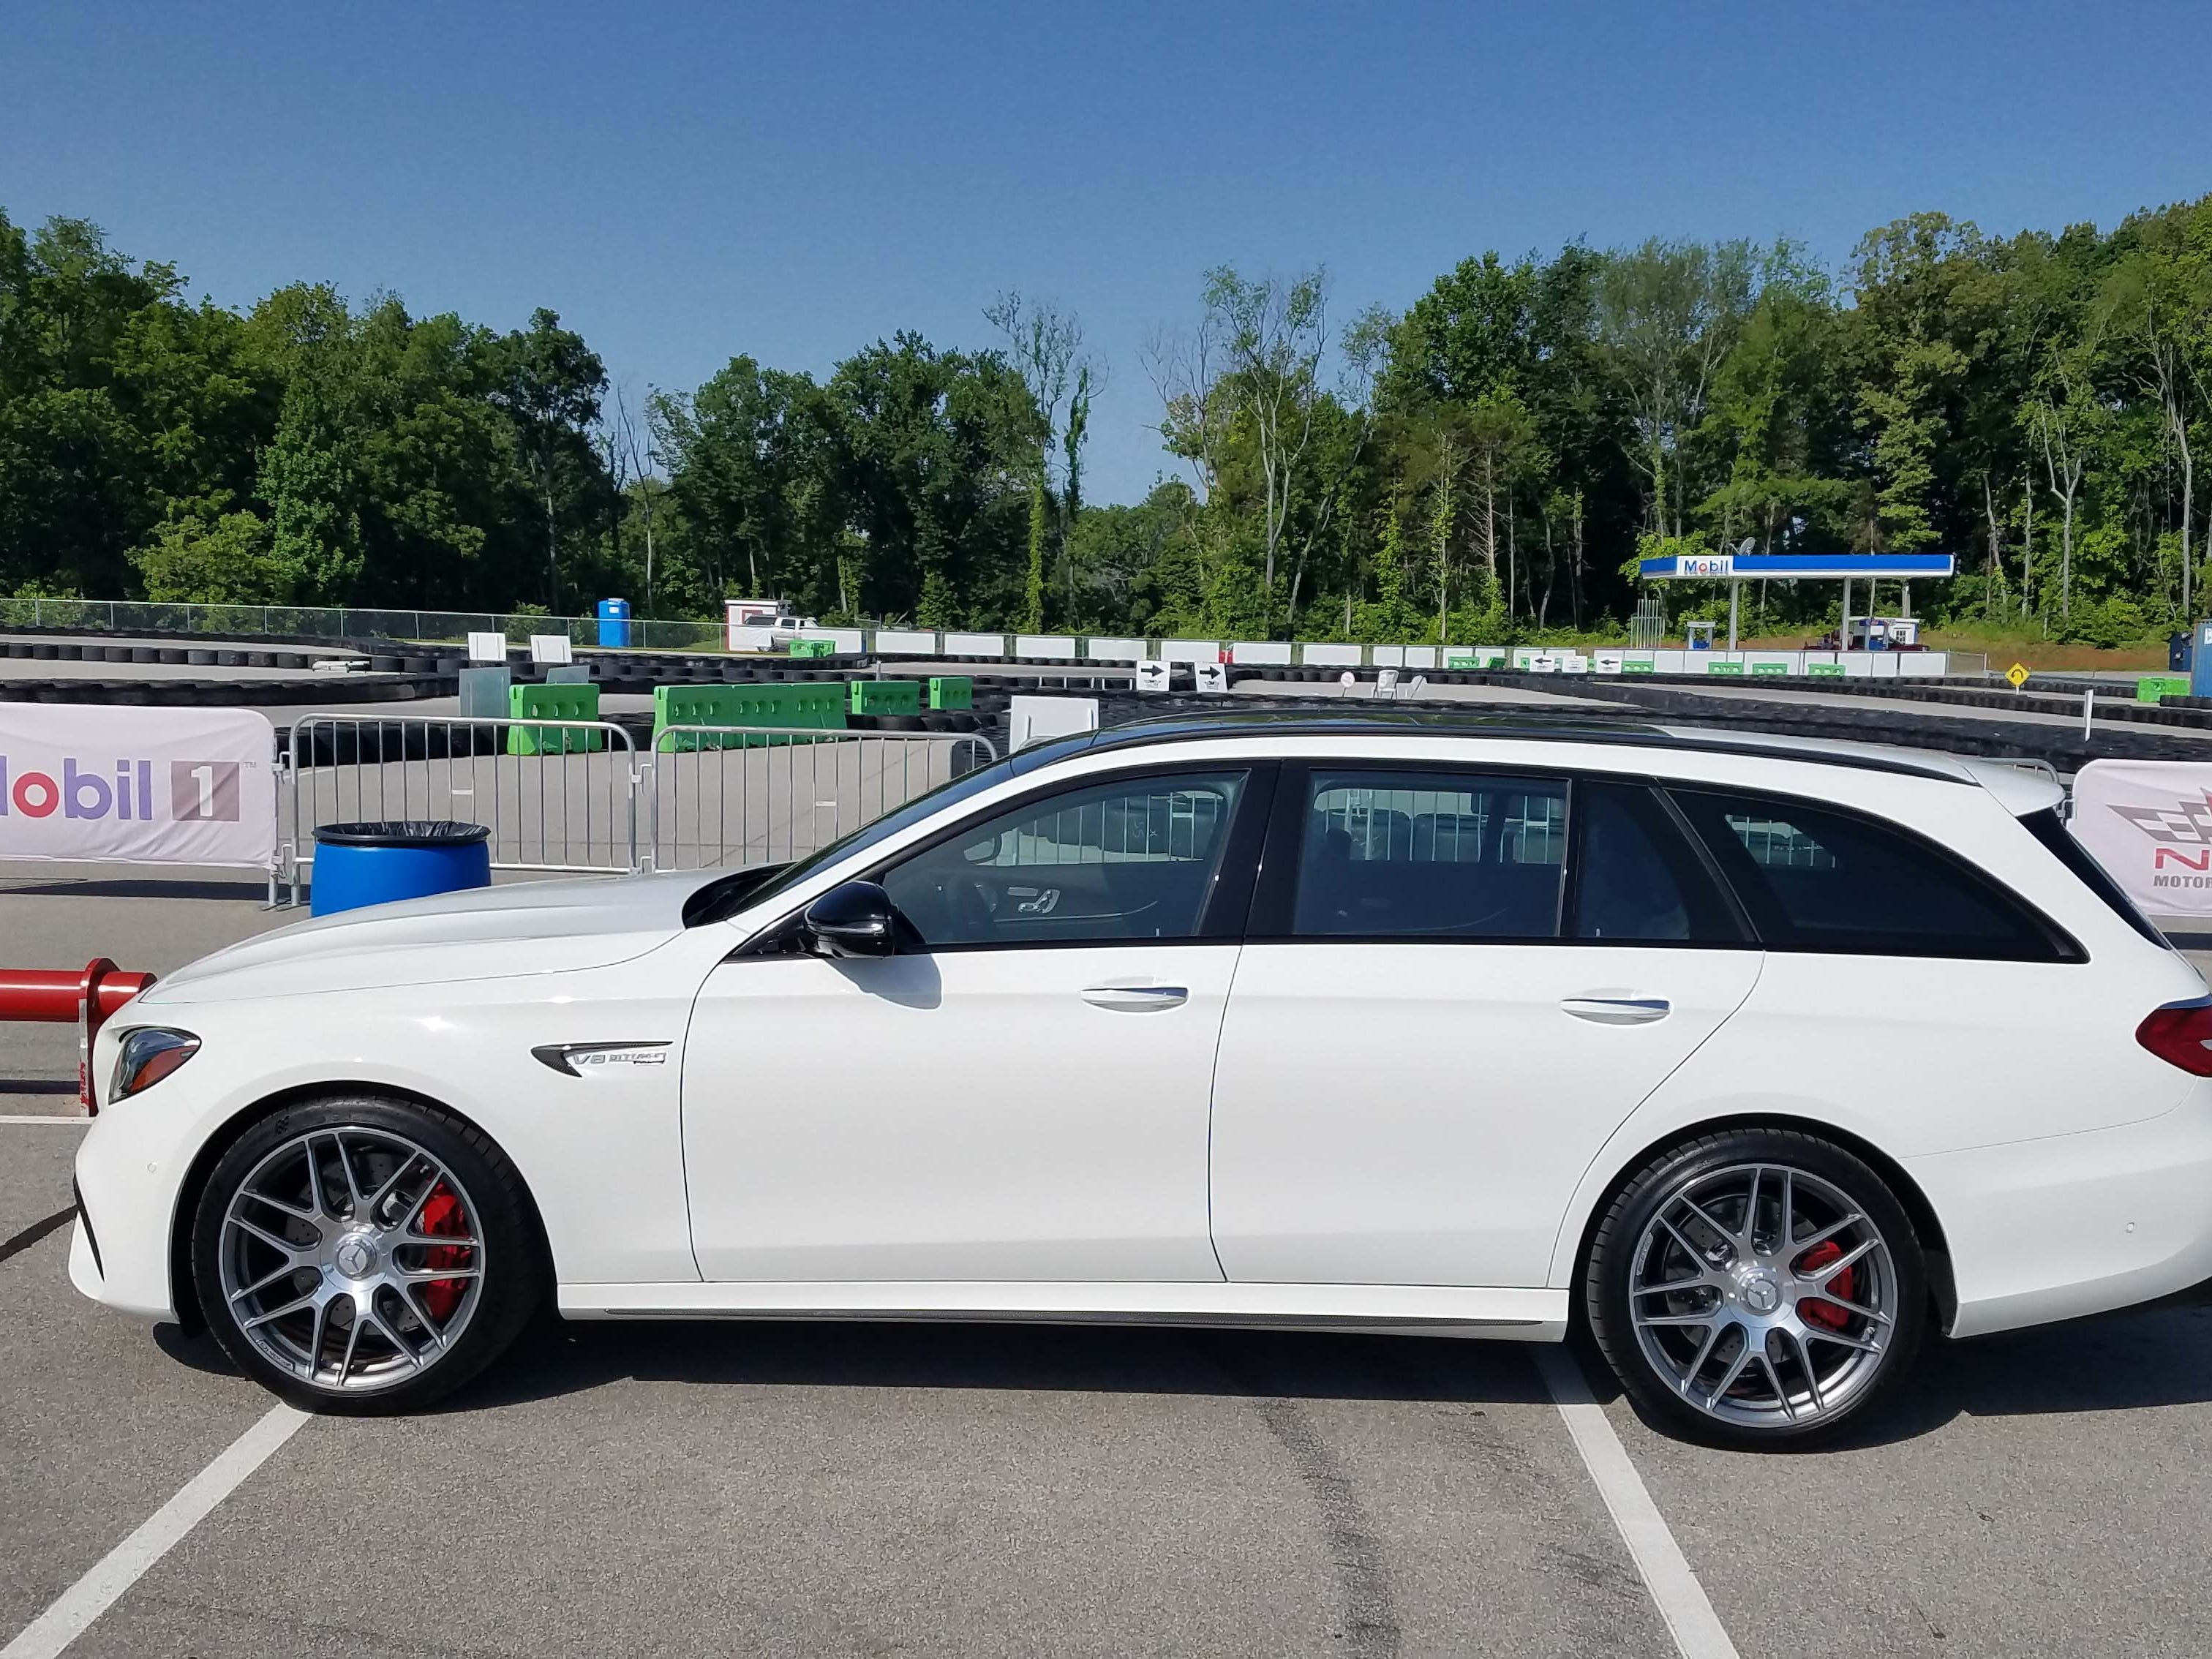 Ready to rumble. The Mercedes-AMG E63 S wagon pays a visit to the National Corvette Museum test track in Nashville.